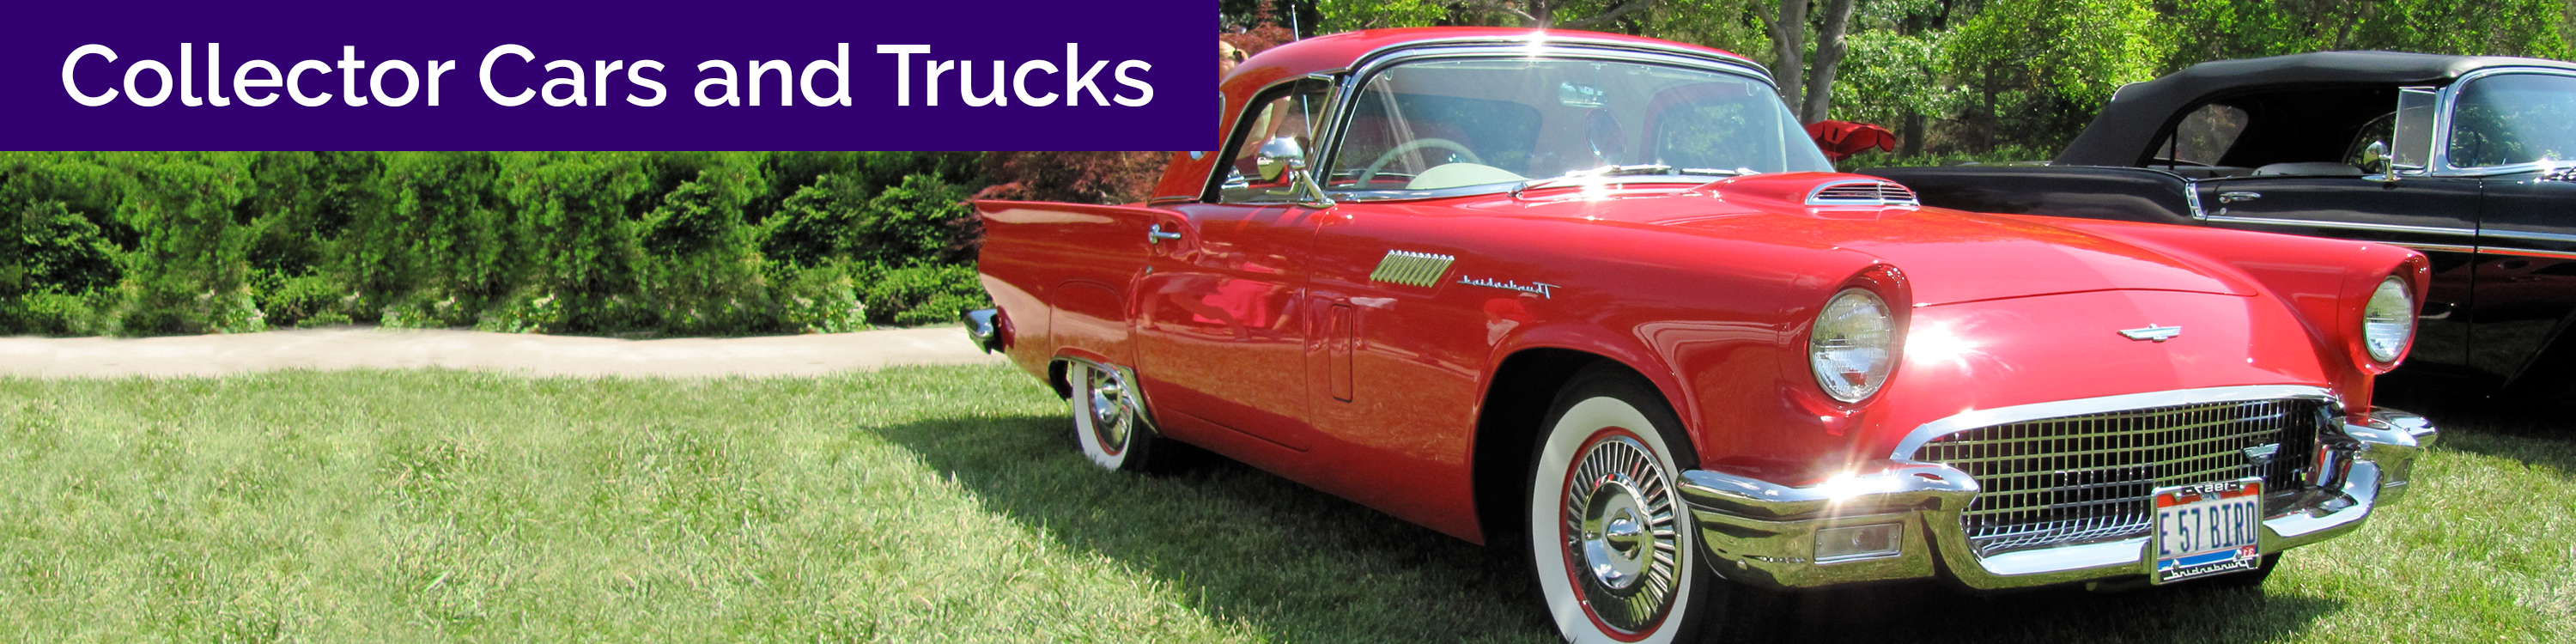 """Text: """"collector cars and trucks"""" over image of red car"""